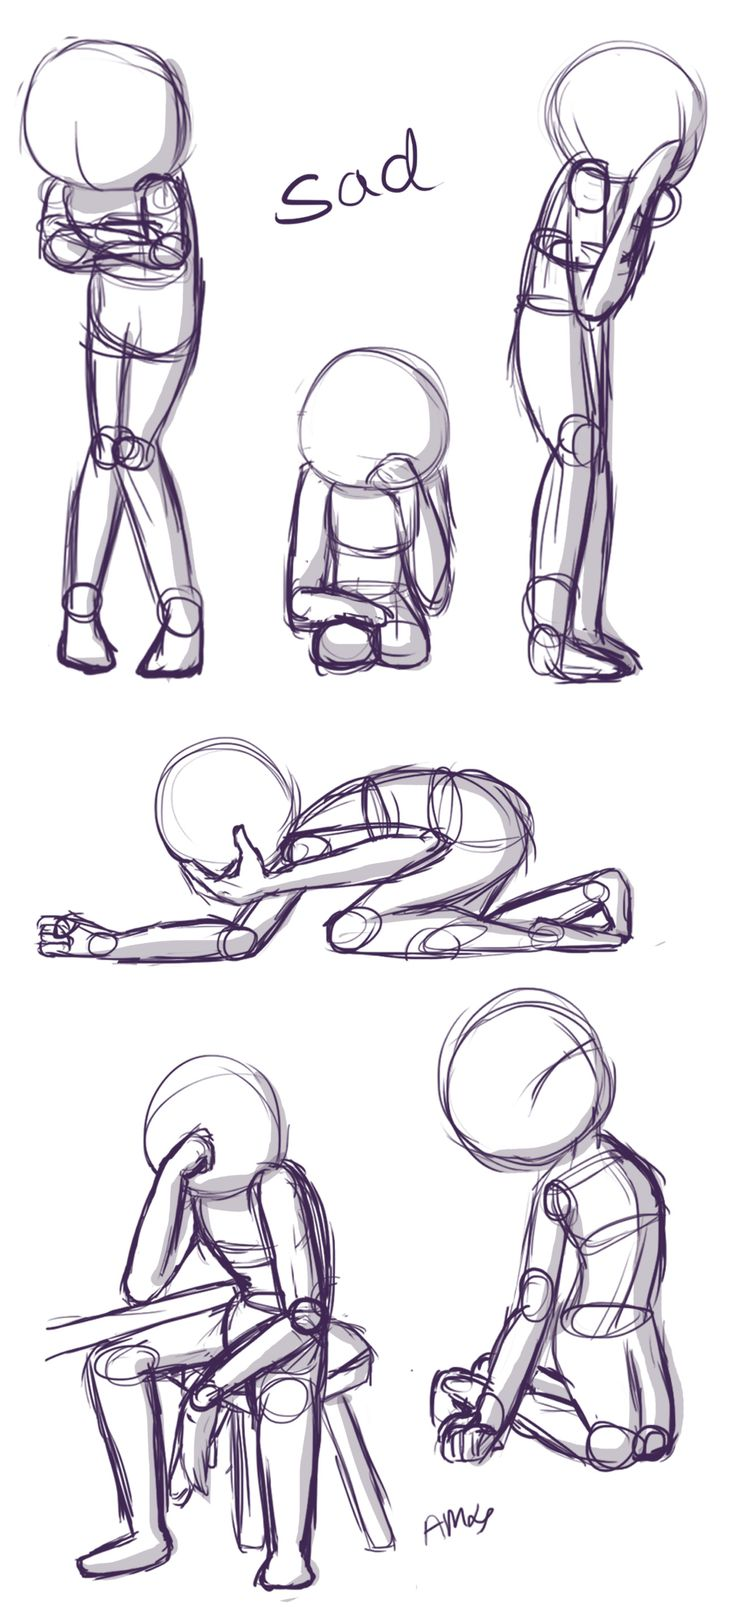 Sad Positions: This is a quick little reference sheet of sad poses. If you'd like to see more poses along with tips, visit the video I attached to this pin! (Drawn by Starla's Art Studio YT)